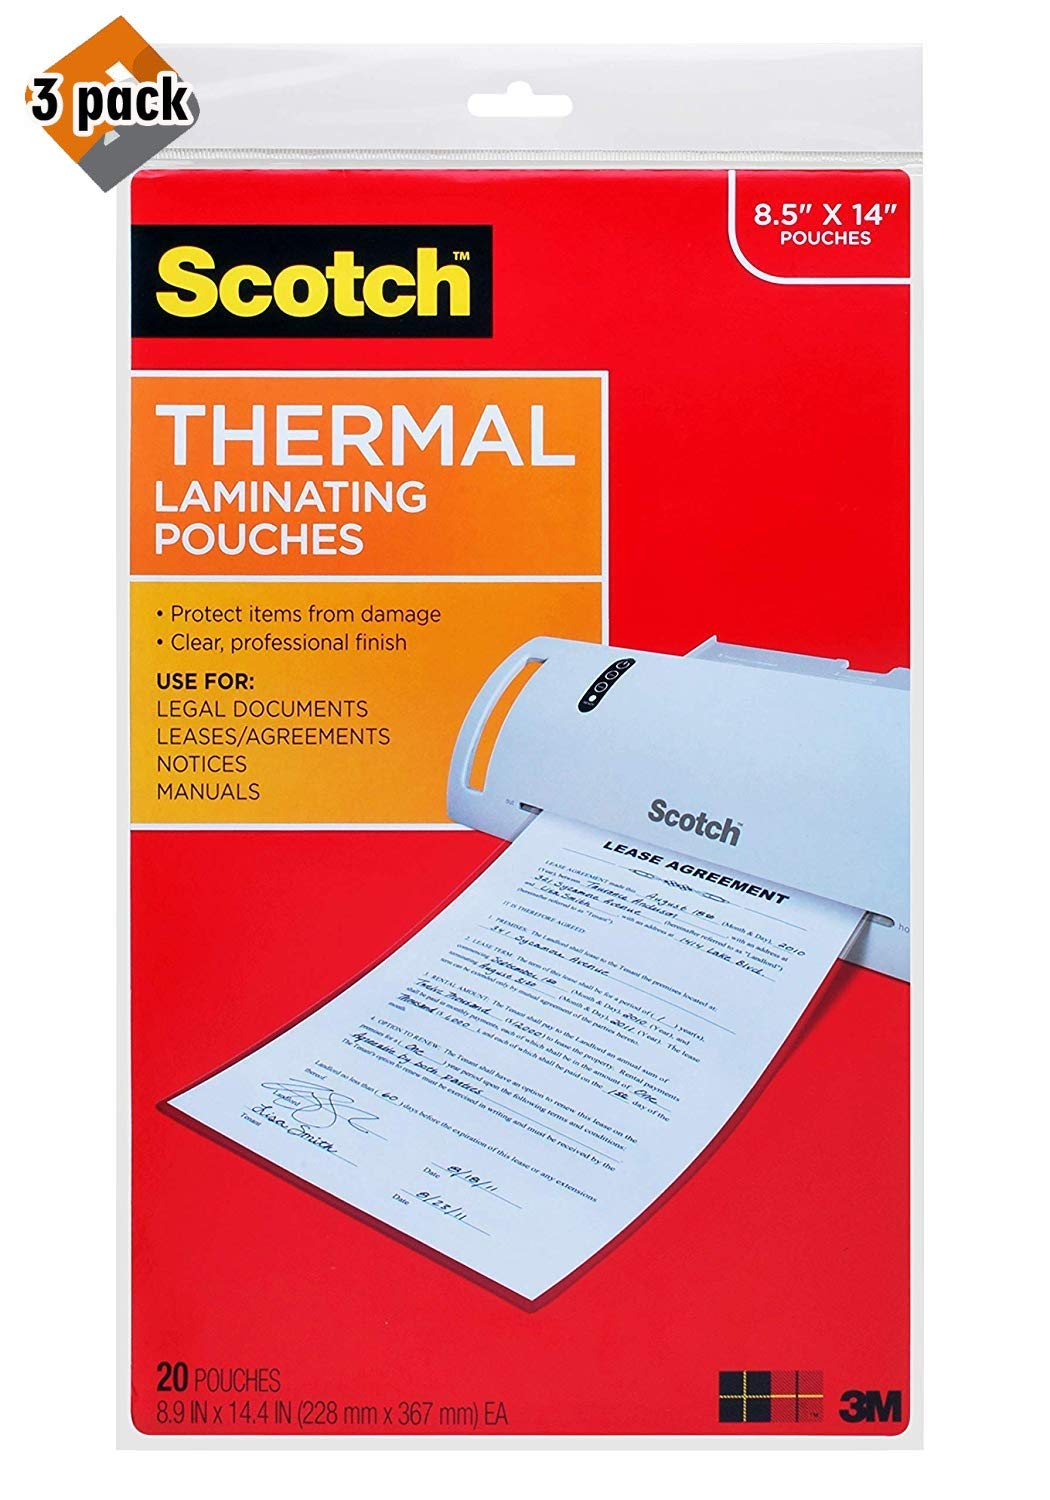 Scotch Thermal Laminating Pouches, 8.5'' x 14'' Inches, 20 Pouches, 3-Pack by Scotch Brand